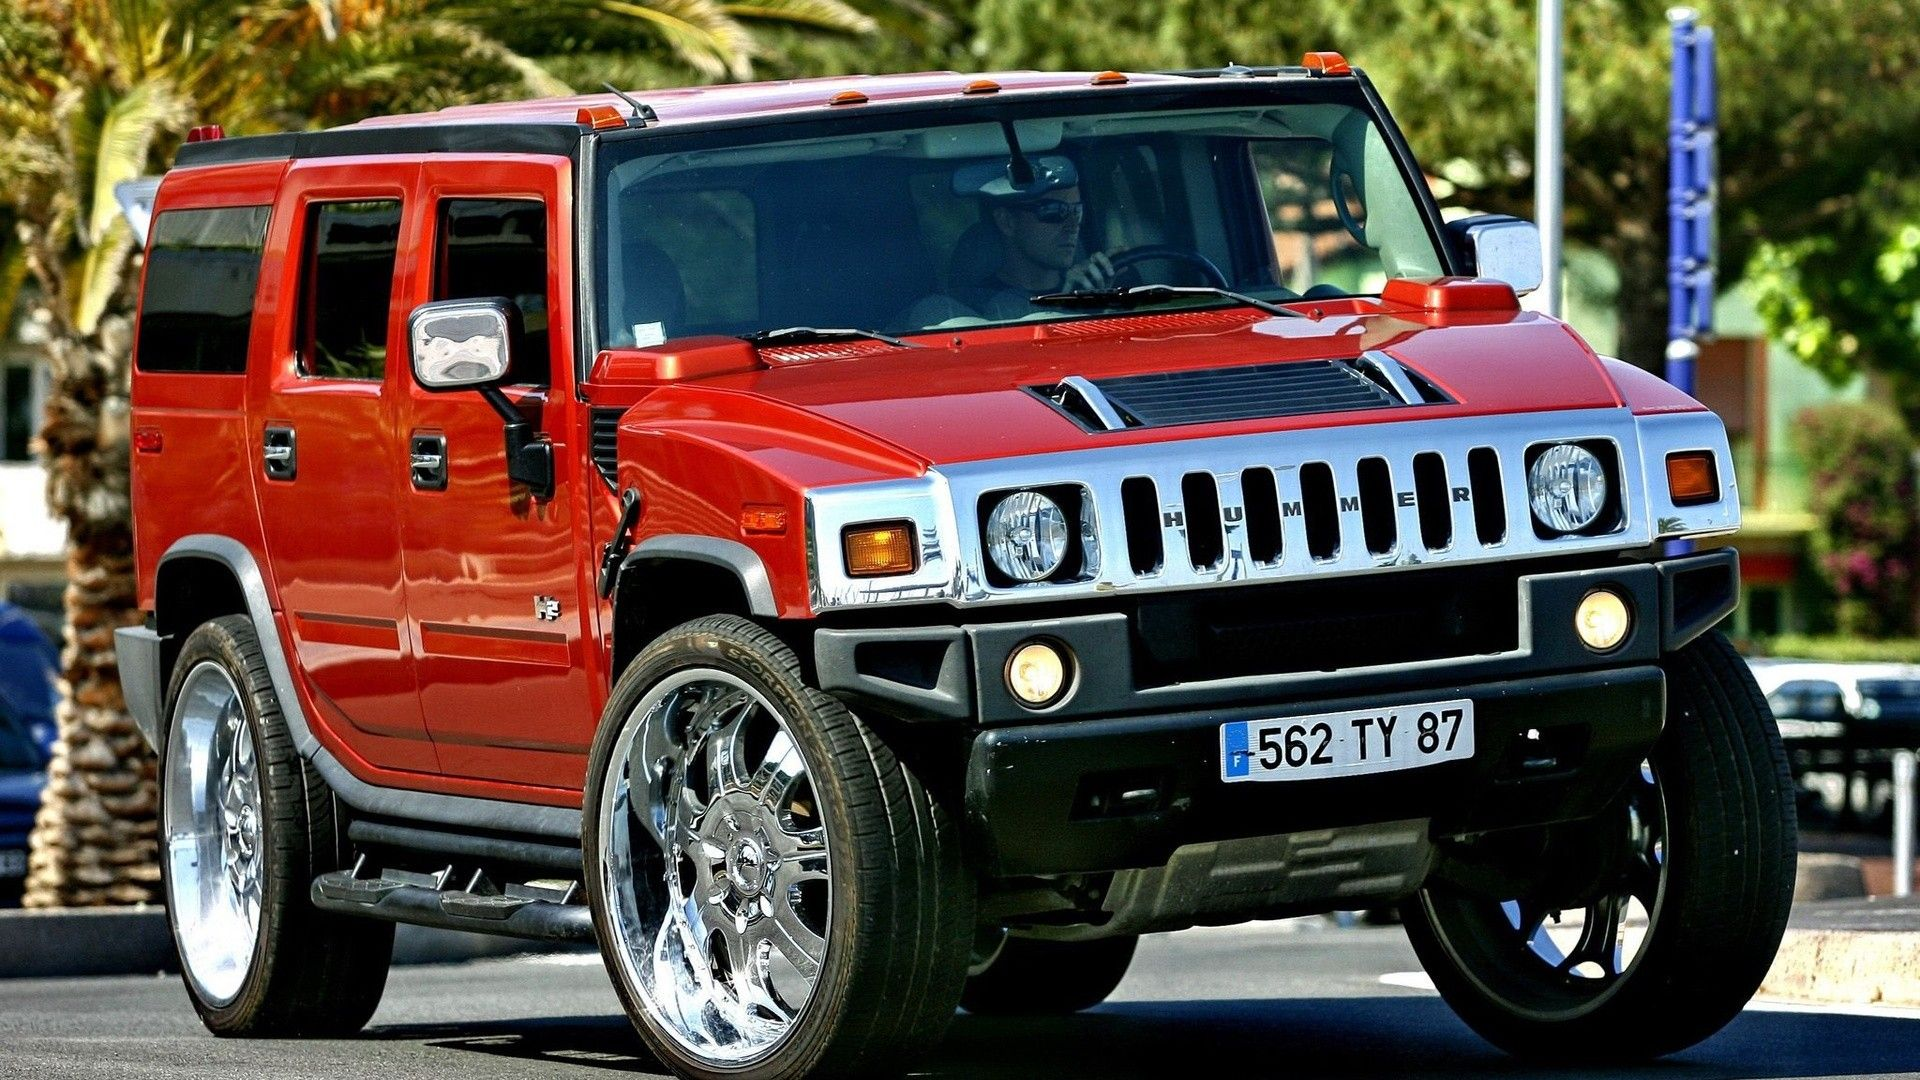 A Red Hummer